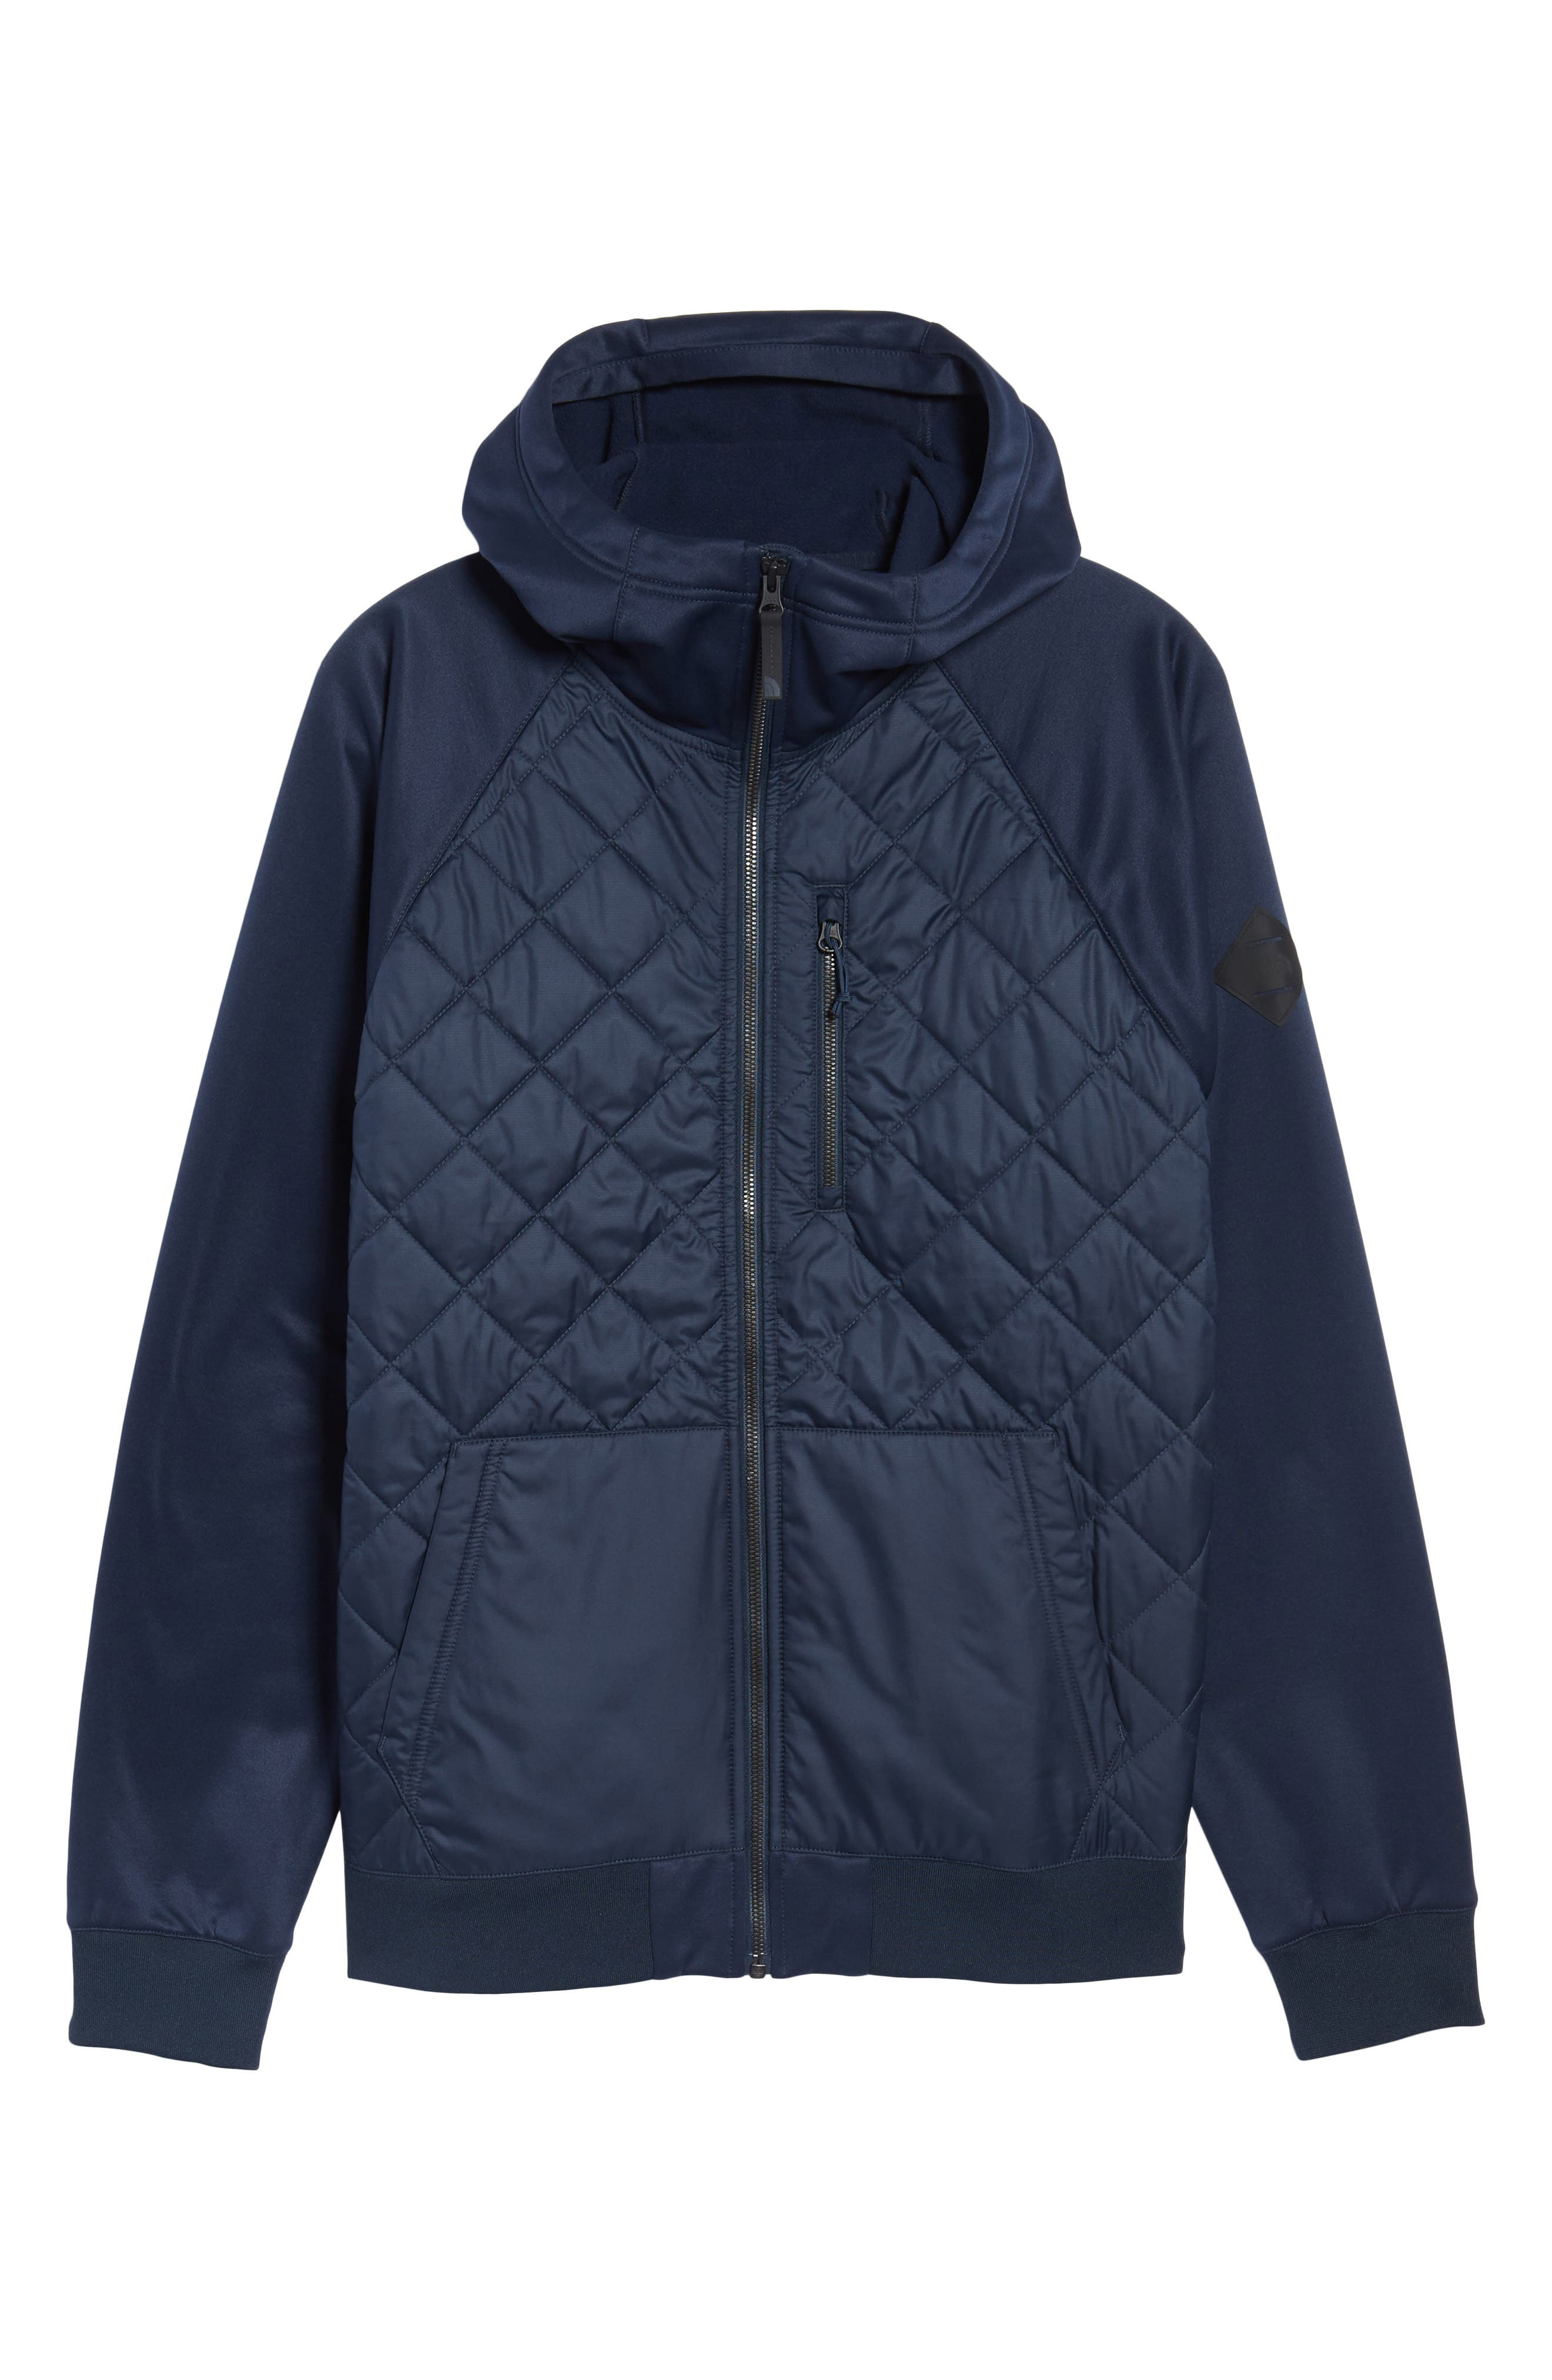 Pilsen Hybrid Jacket,                             Alternate thumbnail 13, color,